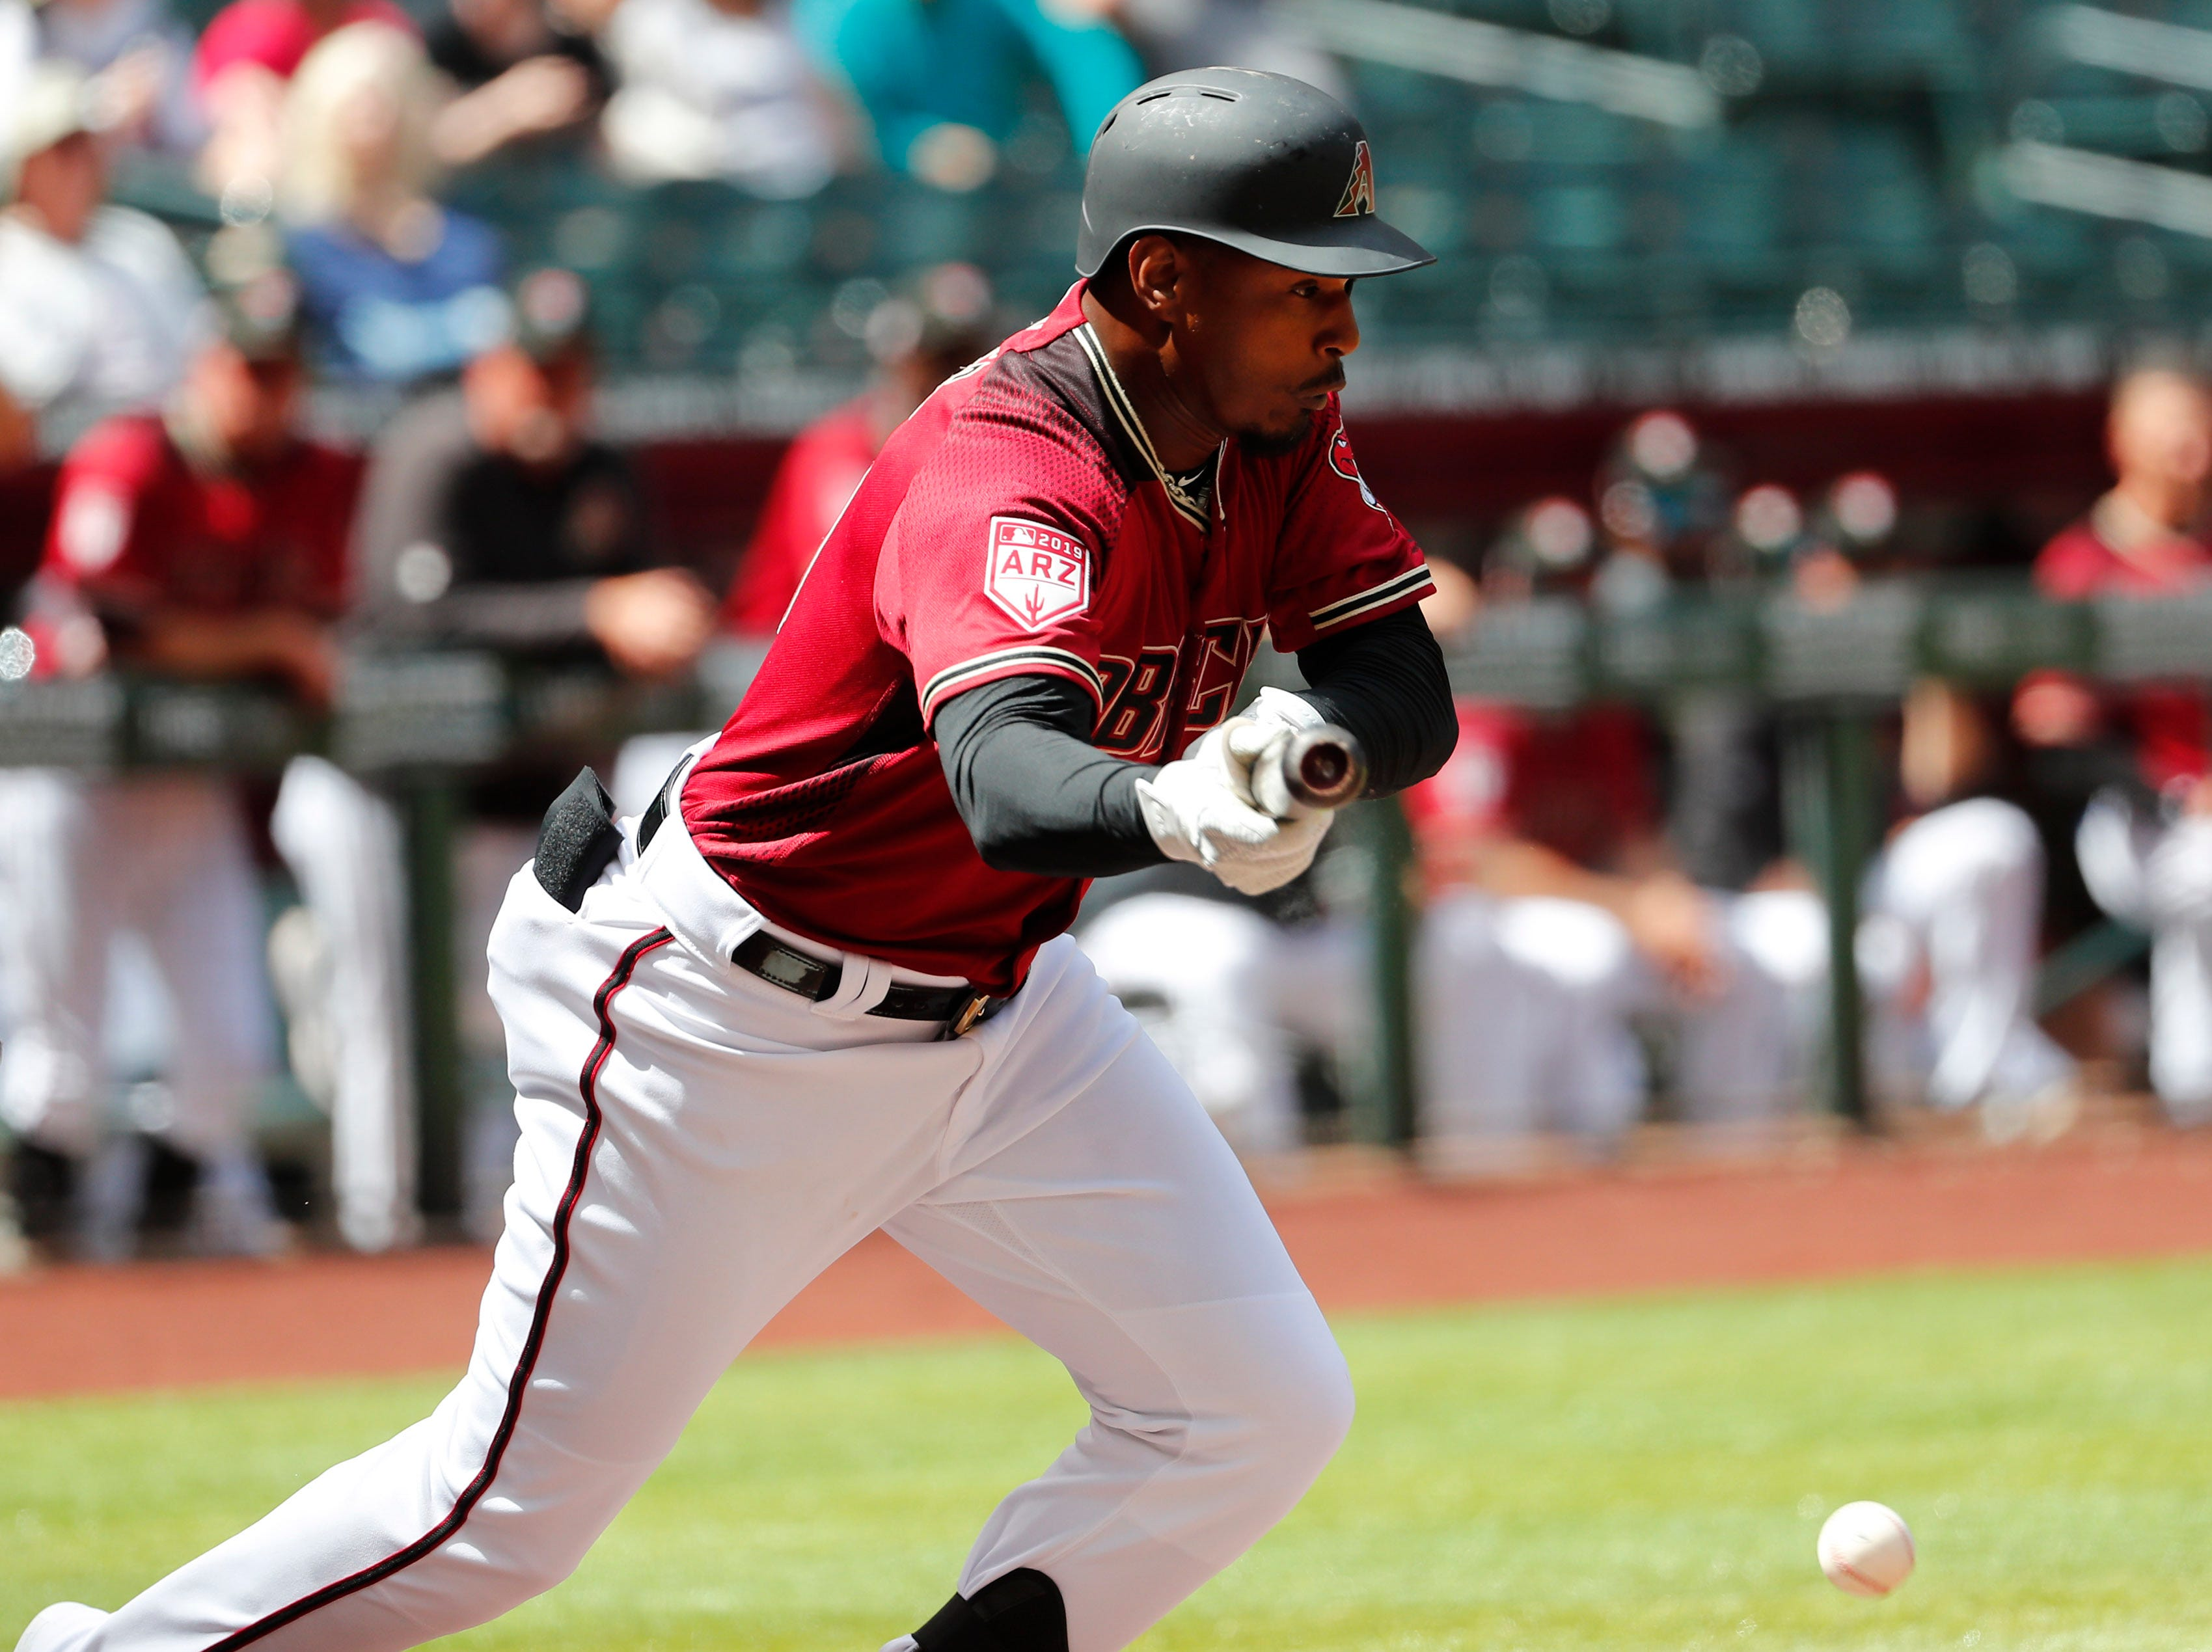 Arizona Diamondbacks right fielder Adam Jones (10) attempts to bunt against the Chicago White Sox during spring training action at Chase Field March 26, 2019.